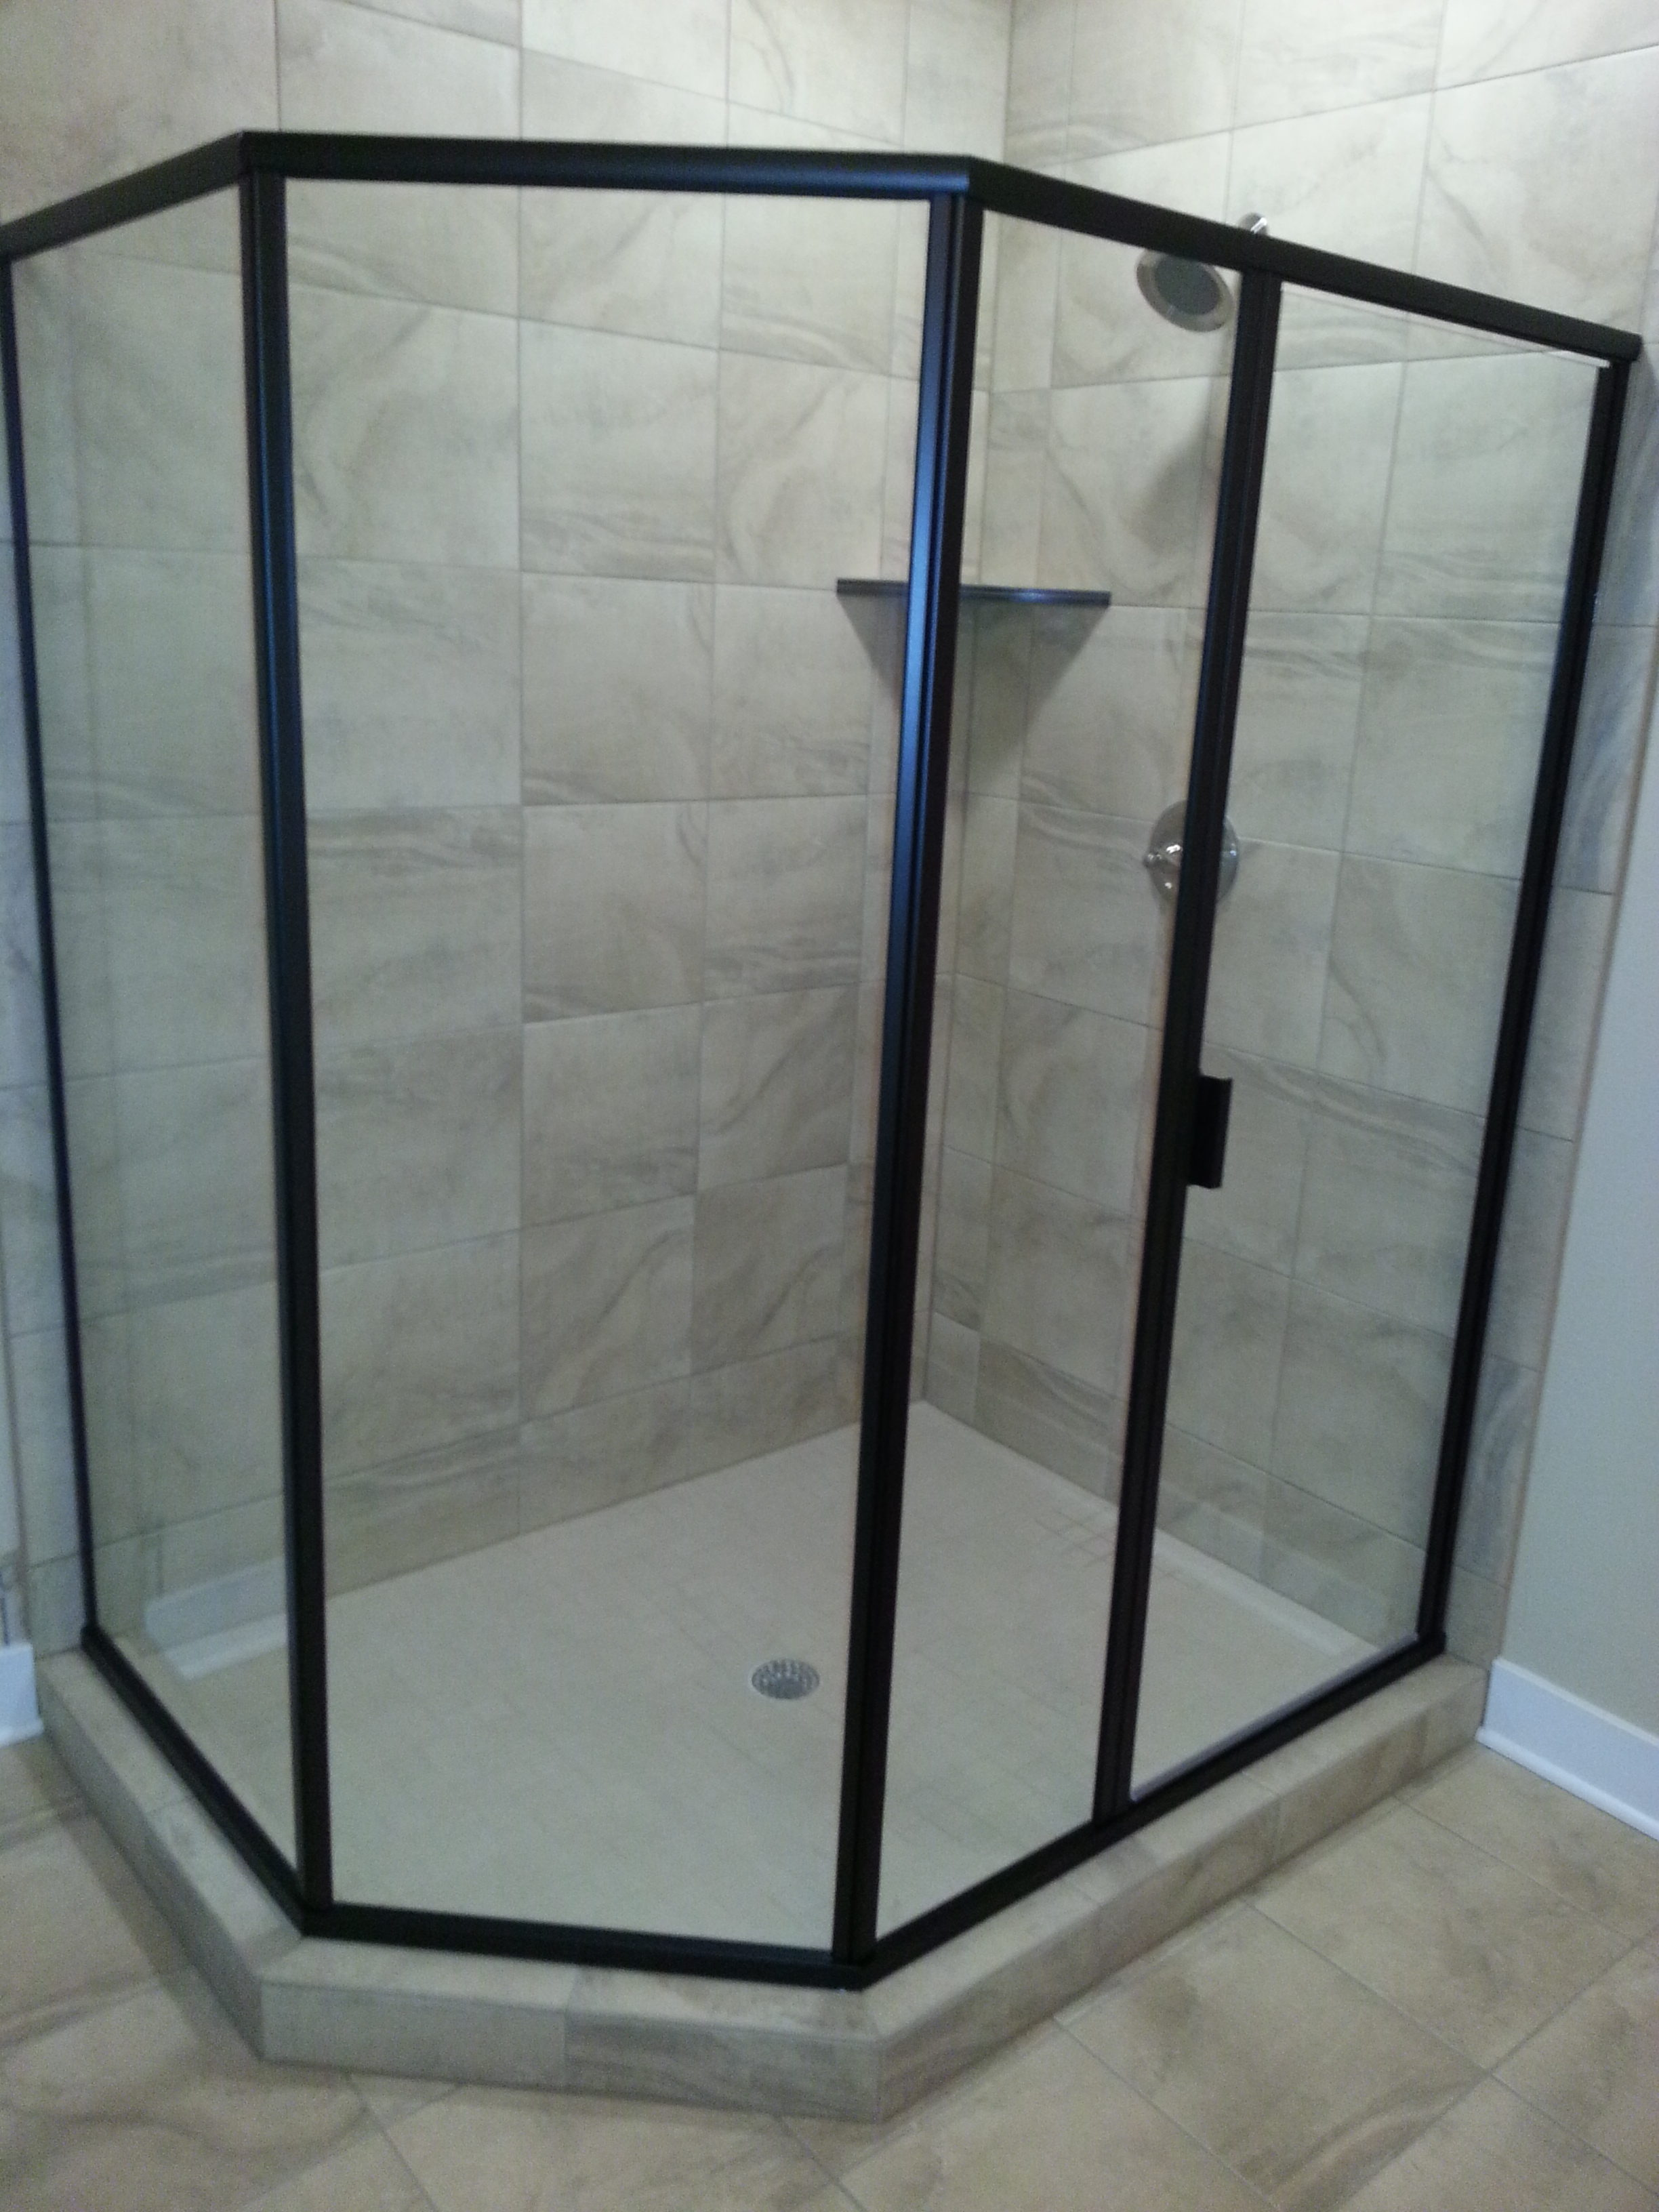 Ordinaire Neo Angle Shower Door In Johnston With Oil Rubbed Bronze Hardware Clear  Glass